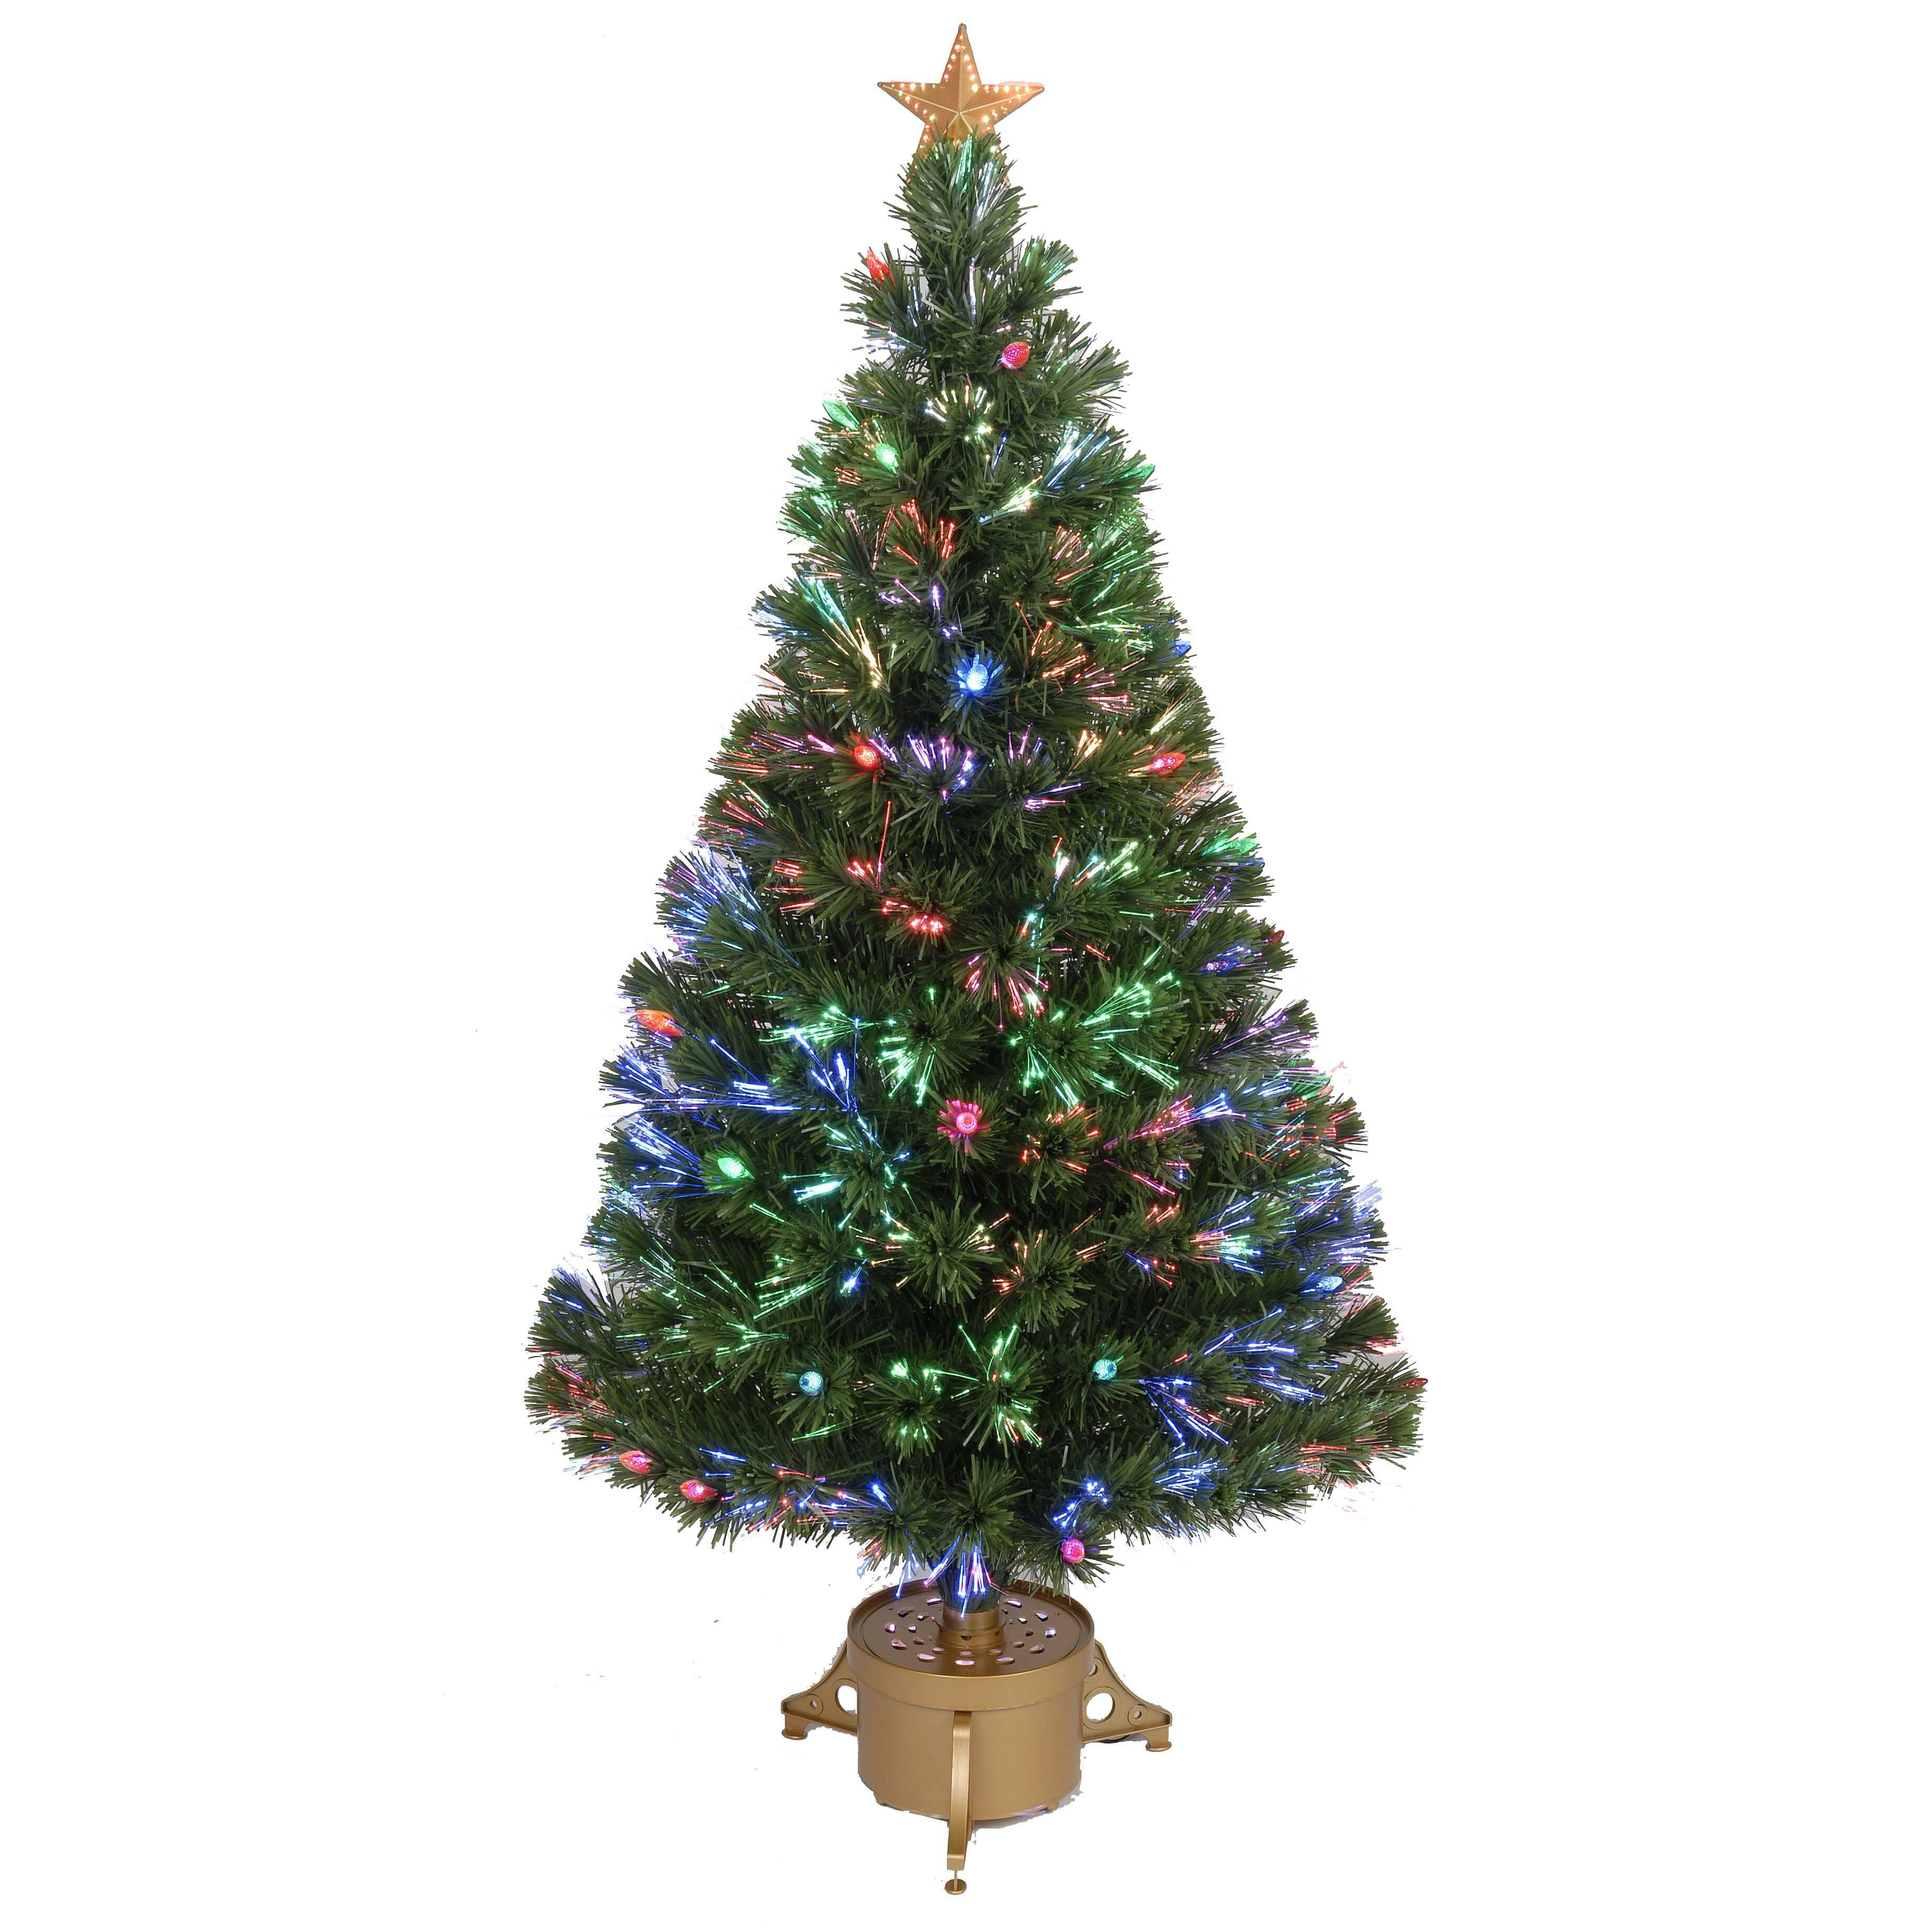 Fibre Optic Christmas Trees Sale: Fiber Optic 4' Green Artificial Christmas Tree With LED